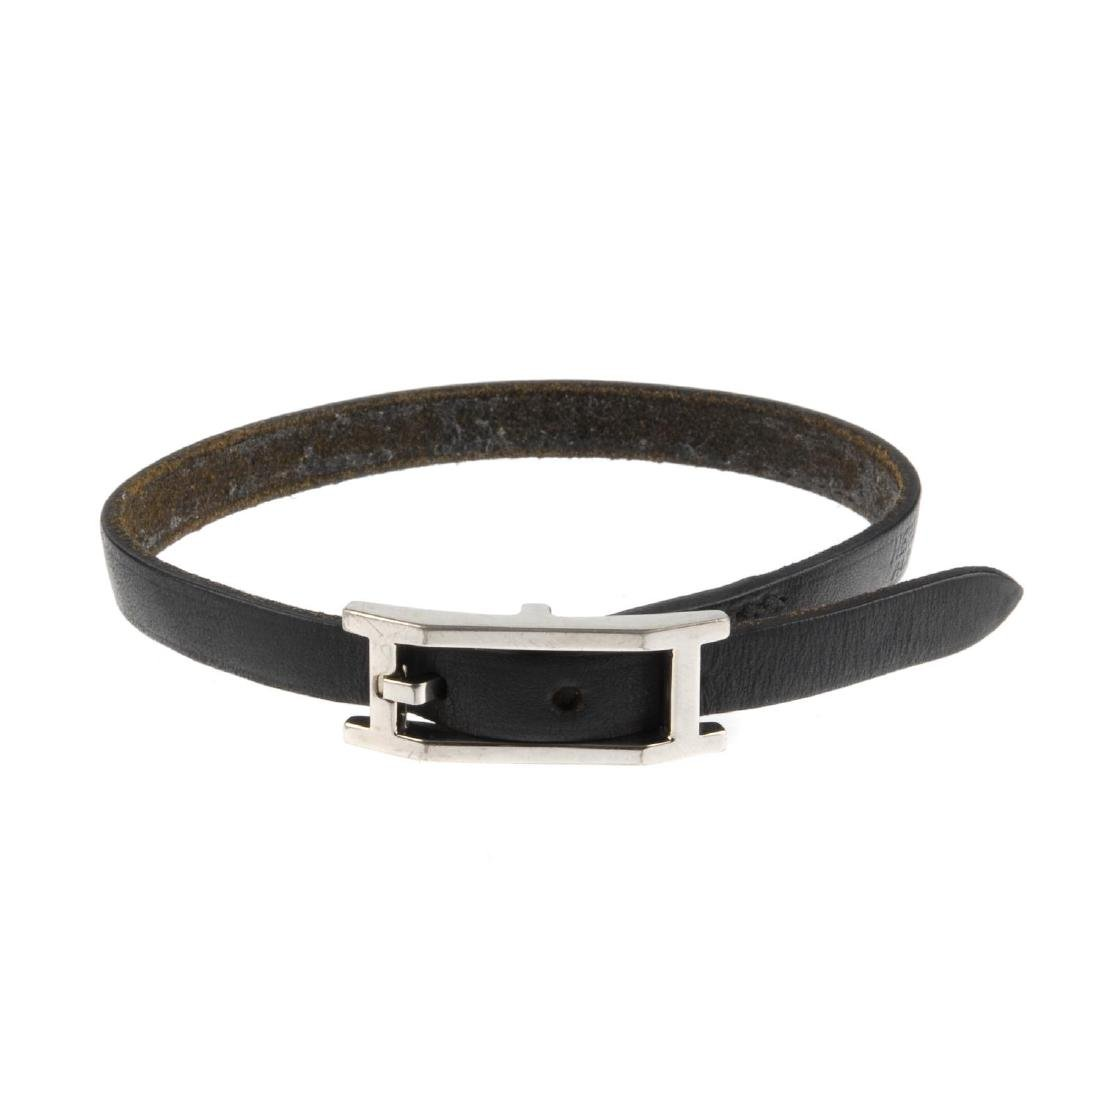 HERMÈS - a black leather bracelet. The silver-tone